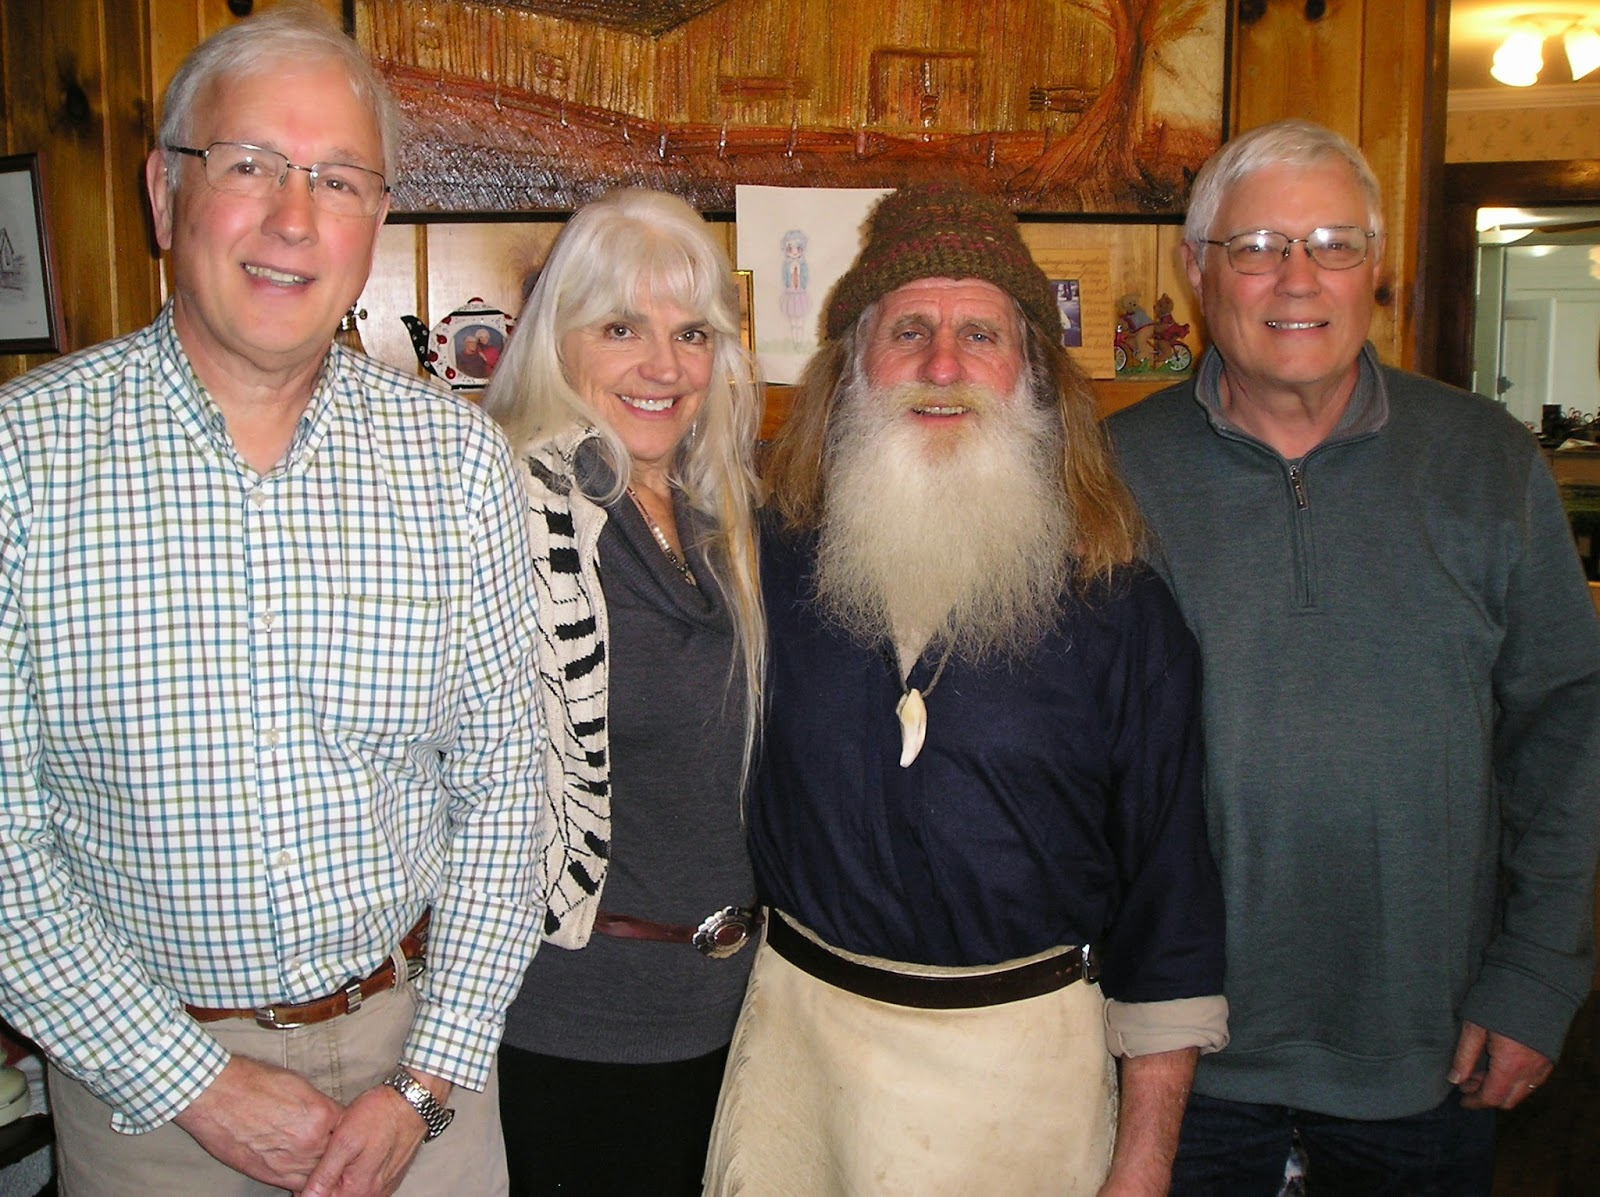 The Cullen House Mick Dodge Comes To The Miller Tree Inn